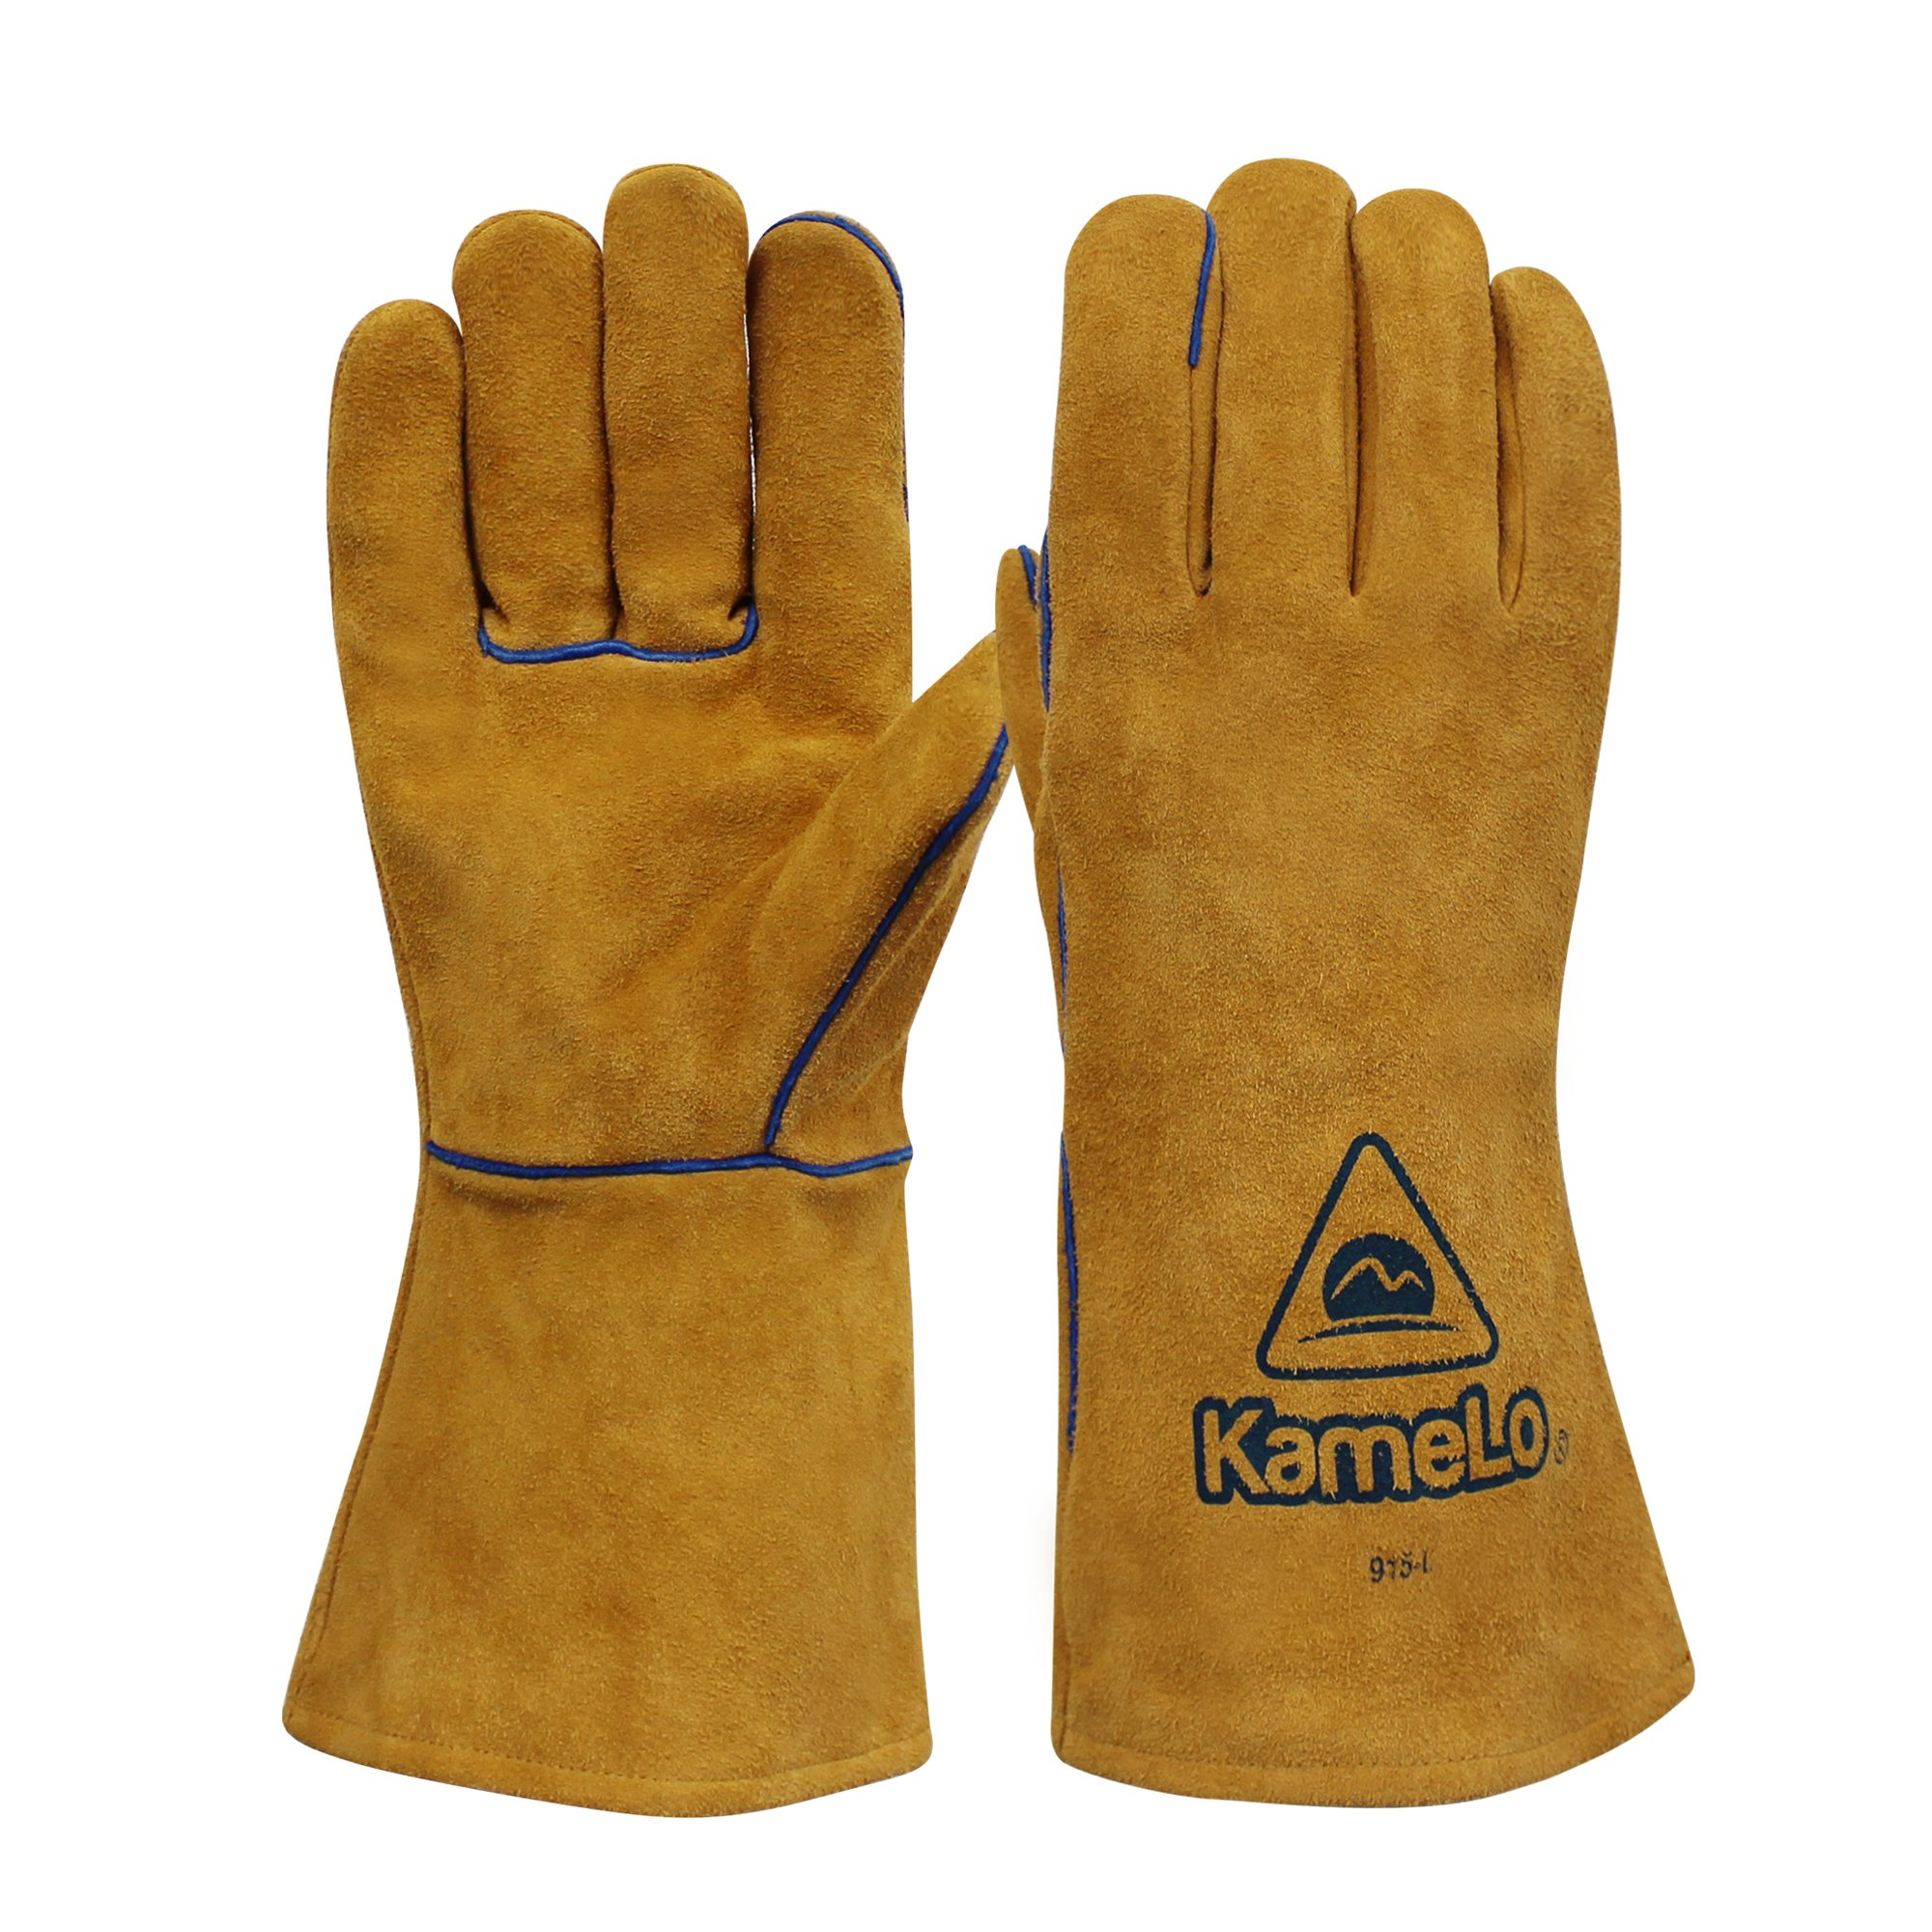 ▶10% OFF◀kameLo - Premium abrasion/flame retardant cowhide MIG Welding Gloves - suitable for BBQ grilling/fireplace/camping/work gloves (13-inch)